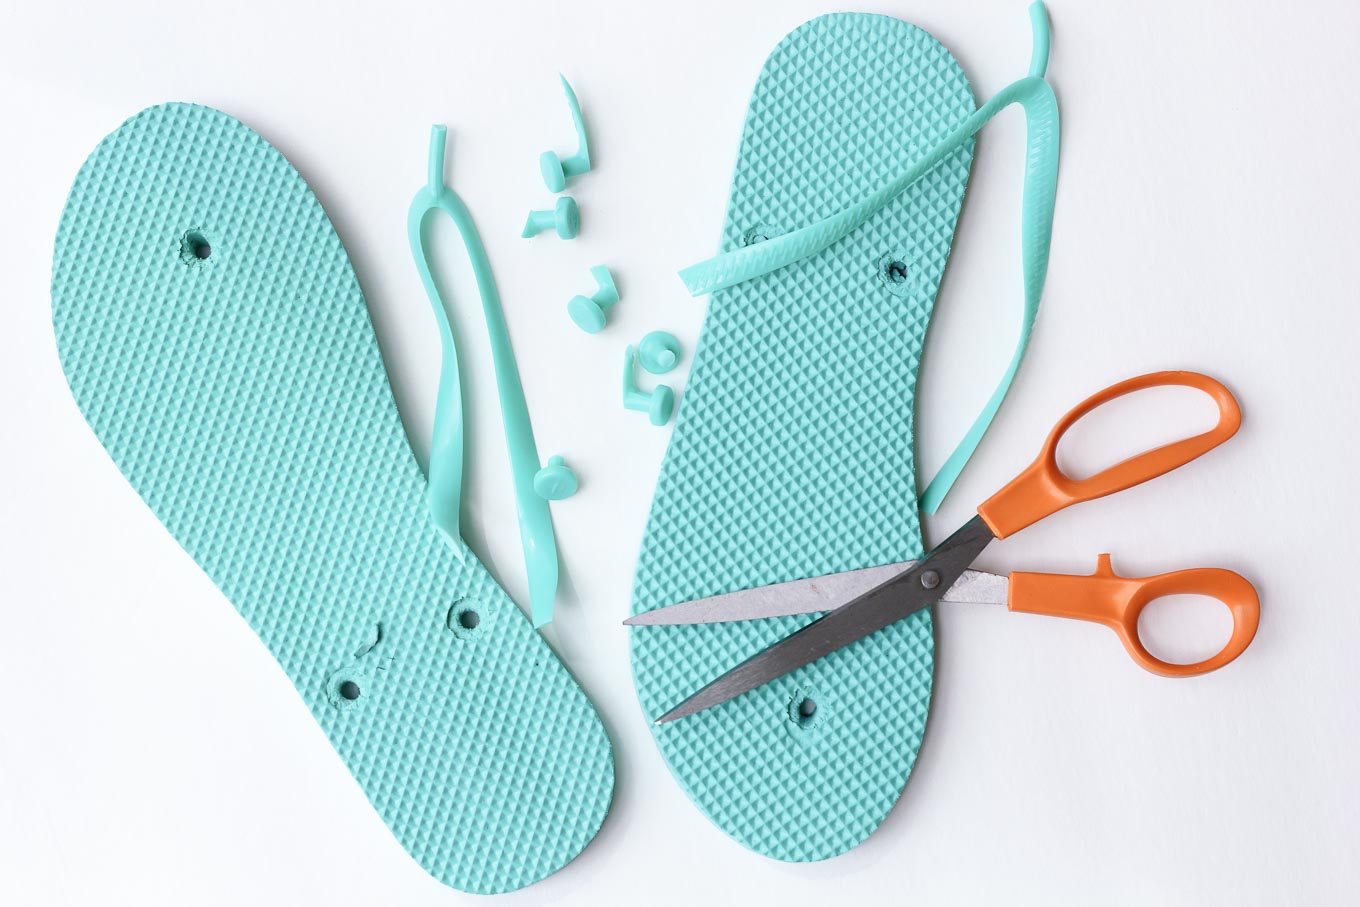 157fcecb3cd4 Turn a simple pair of cheap flip flops into some lightweight crocheted  slippers house shoes with this simple tutorial. The cotton yarn makes them  perfect ...